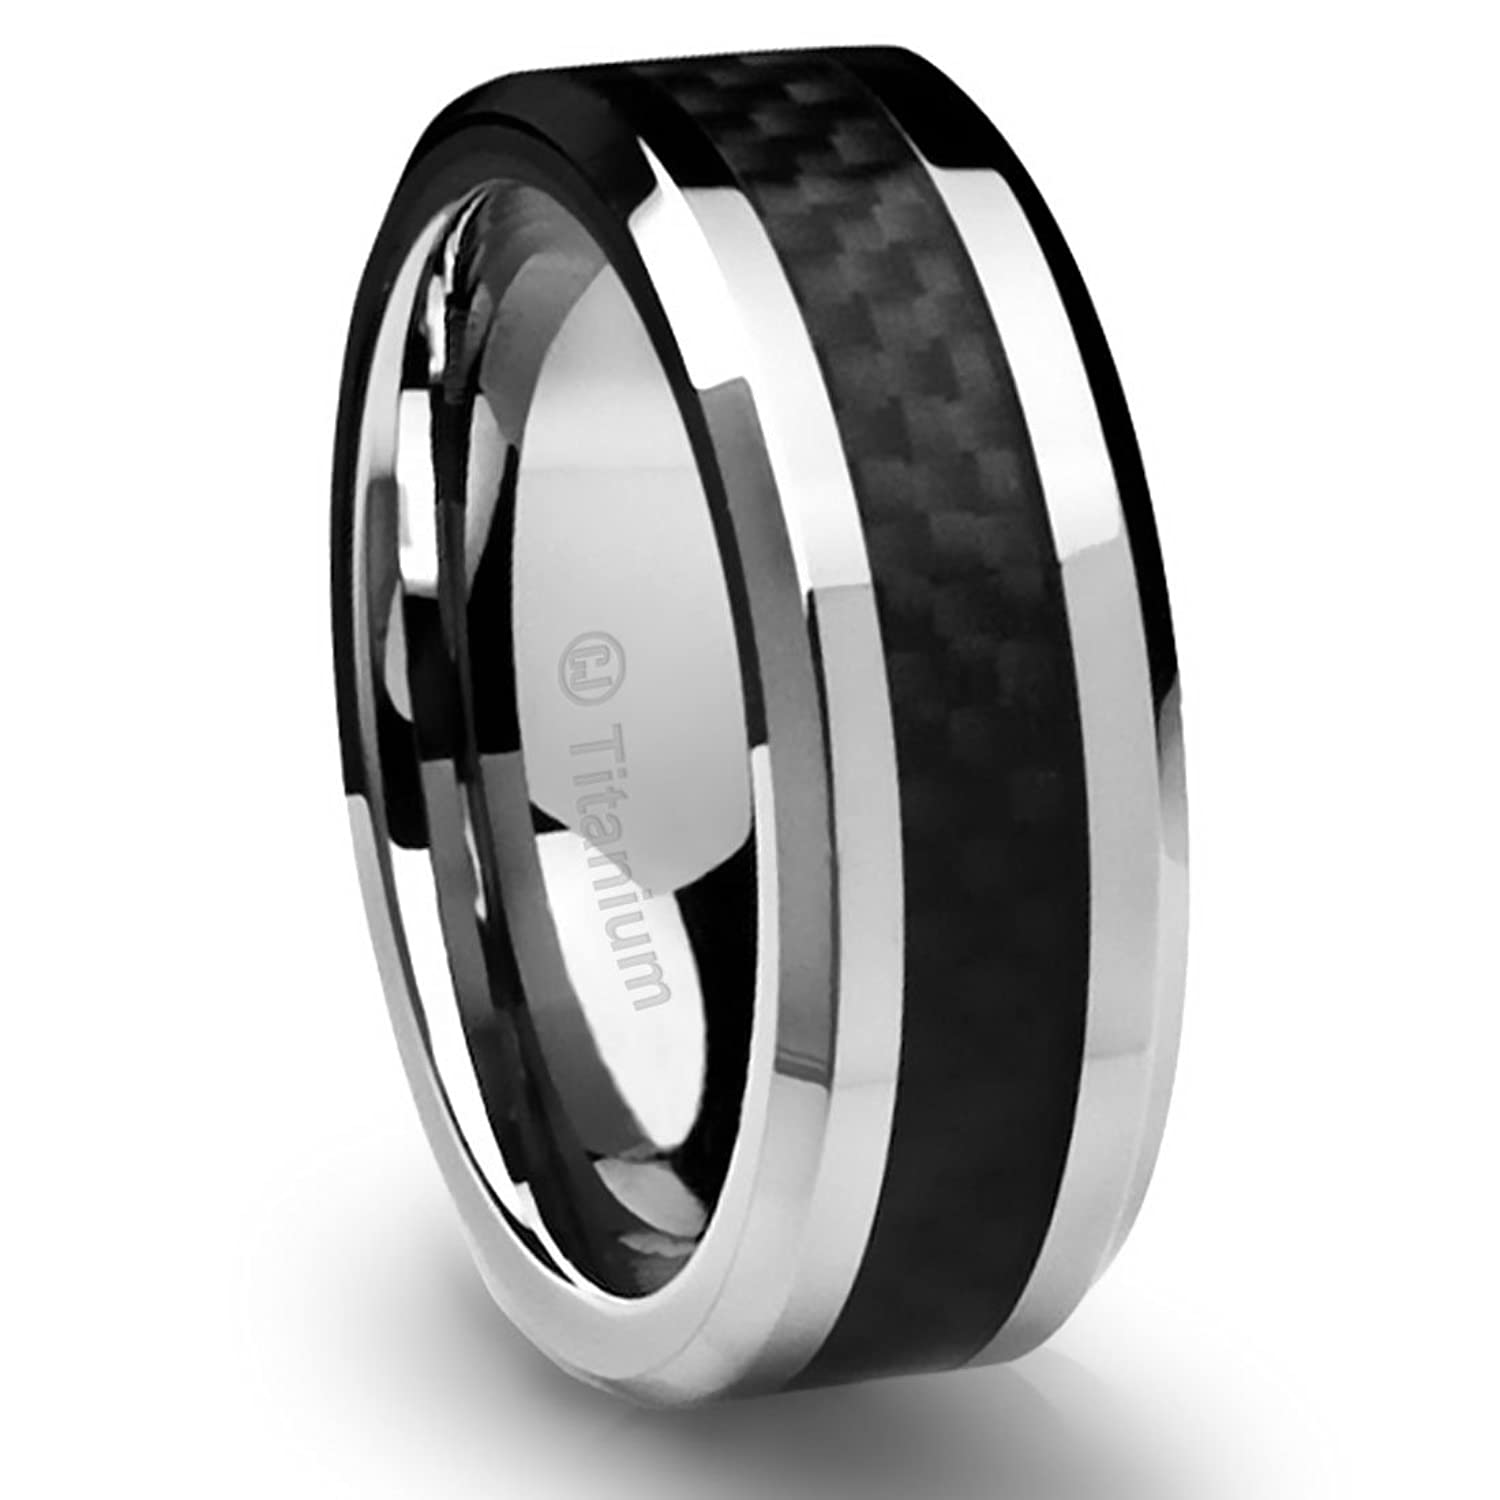 no lusso with singles bands mens fit ring product edge medical rings concepts hypoallergenic wedding for band men design gradient black rubber photoshop thin grade silicone logo beveled comfort